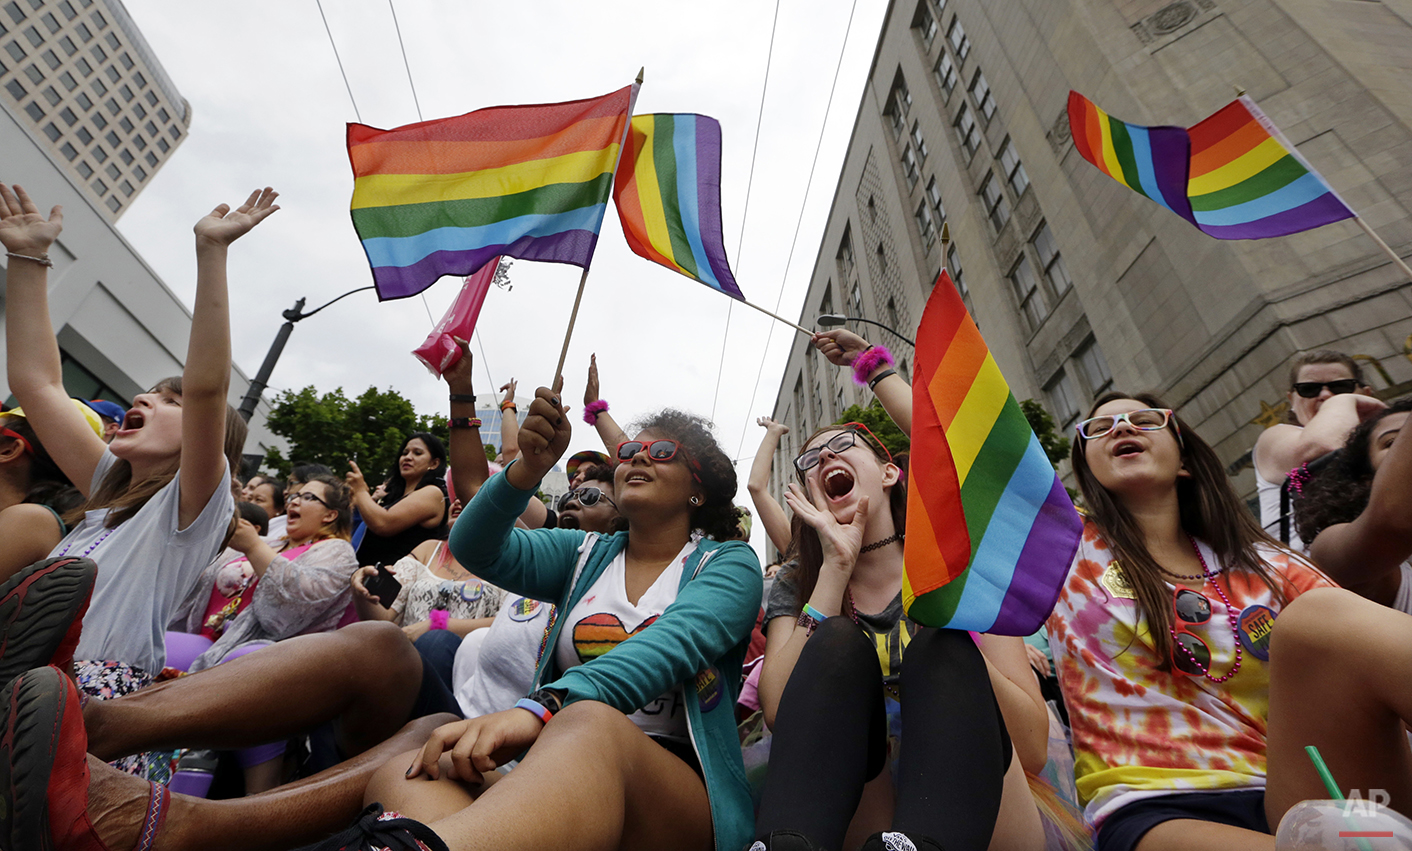 Parade viewers cheer at the 41st annual Pride Parade Sunday, June 28, 2015, in Seattle. Rainbows and good cheer were out in force Sunday as hundreds of thousands of people packed gay pride events from New York City to Seattle, San Francisco to Chicago to celebrate a Supreme Court ruling legalizing same-sex marriage. (AP Photo/Elaine Thompson)